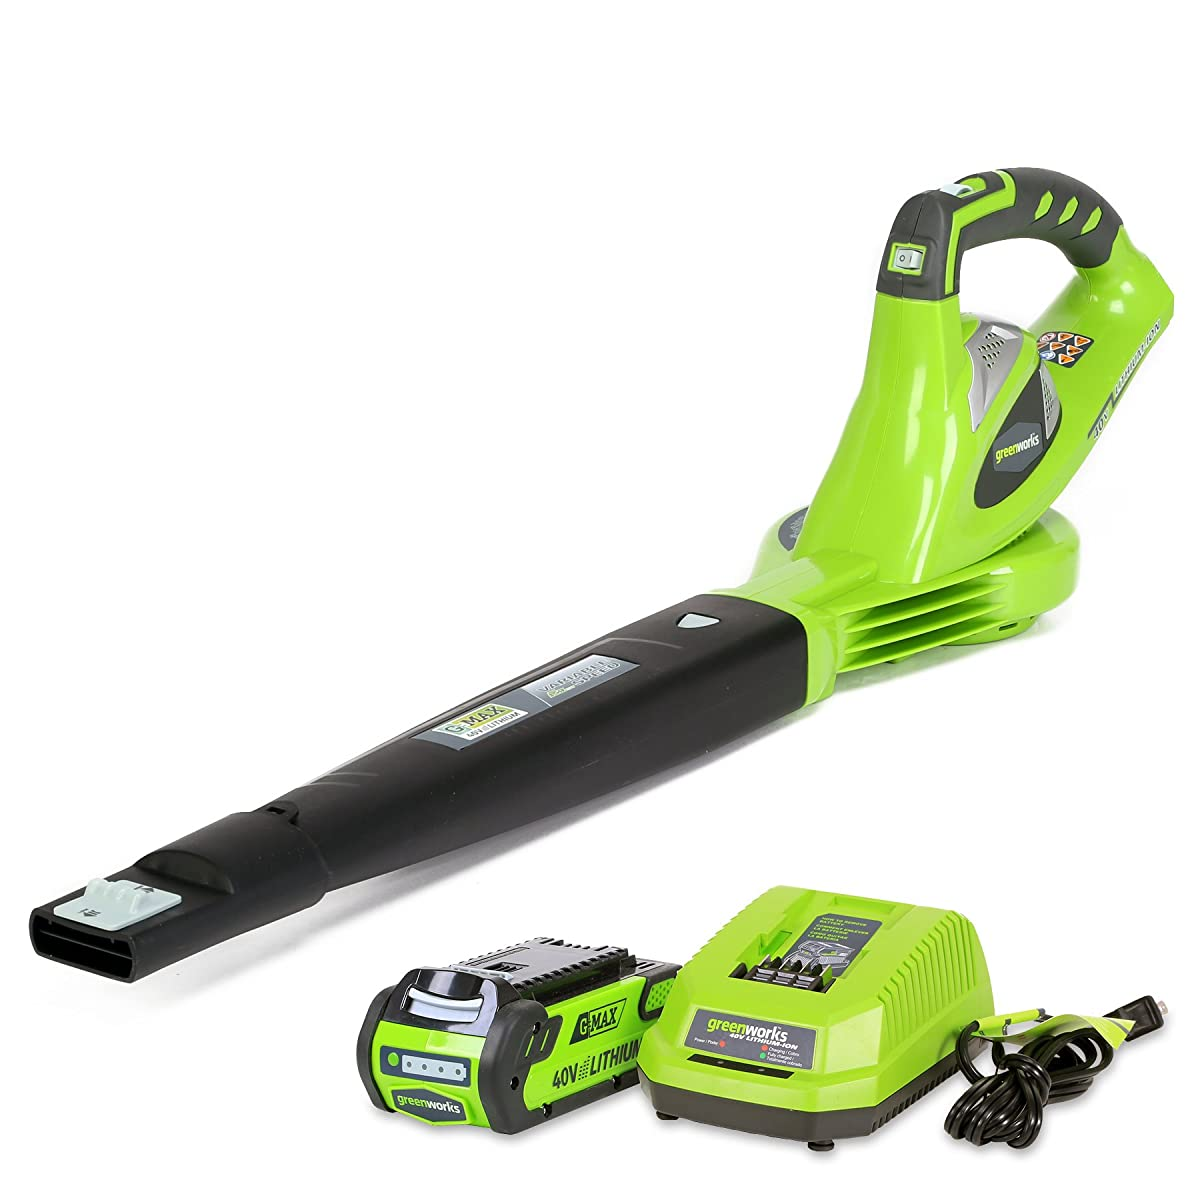 Greenworks 40V 150 MPH Variable Speed Cordless Blower, 2.0 AH Battery Included 24252